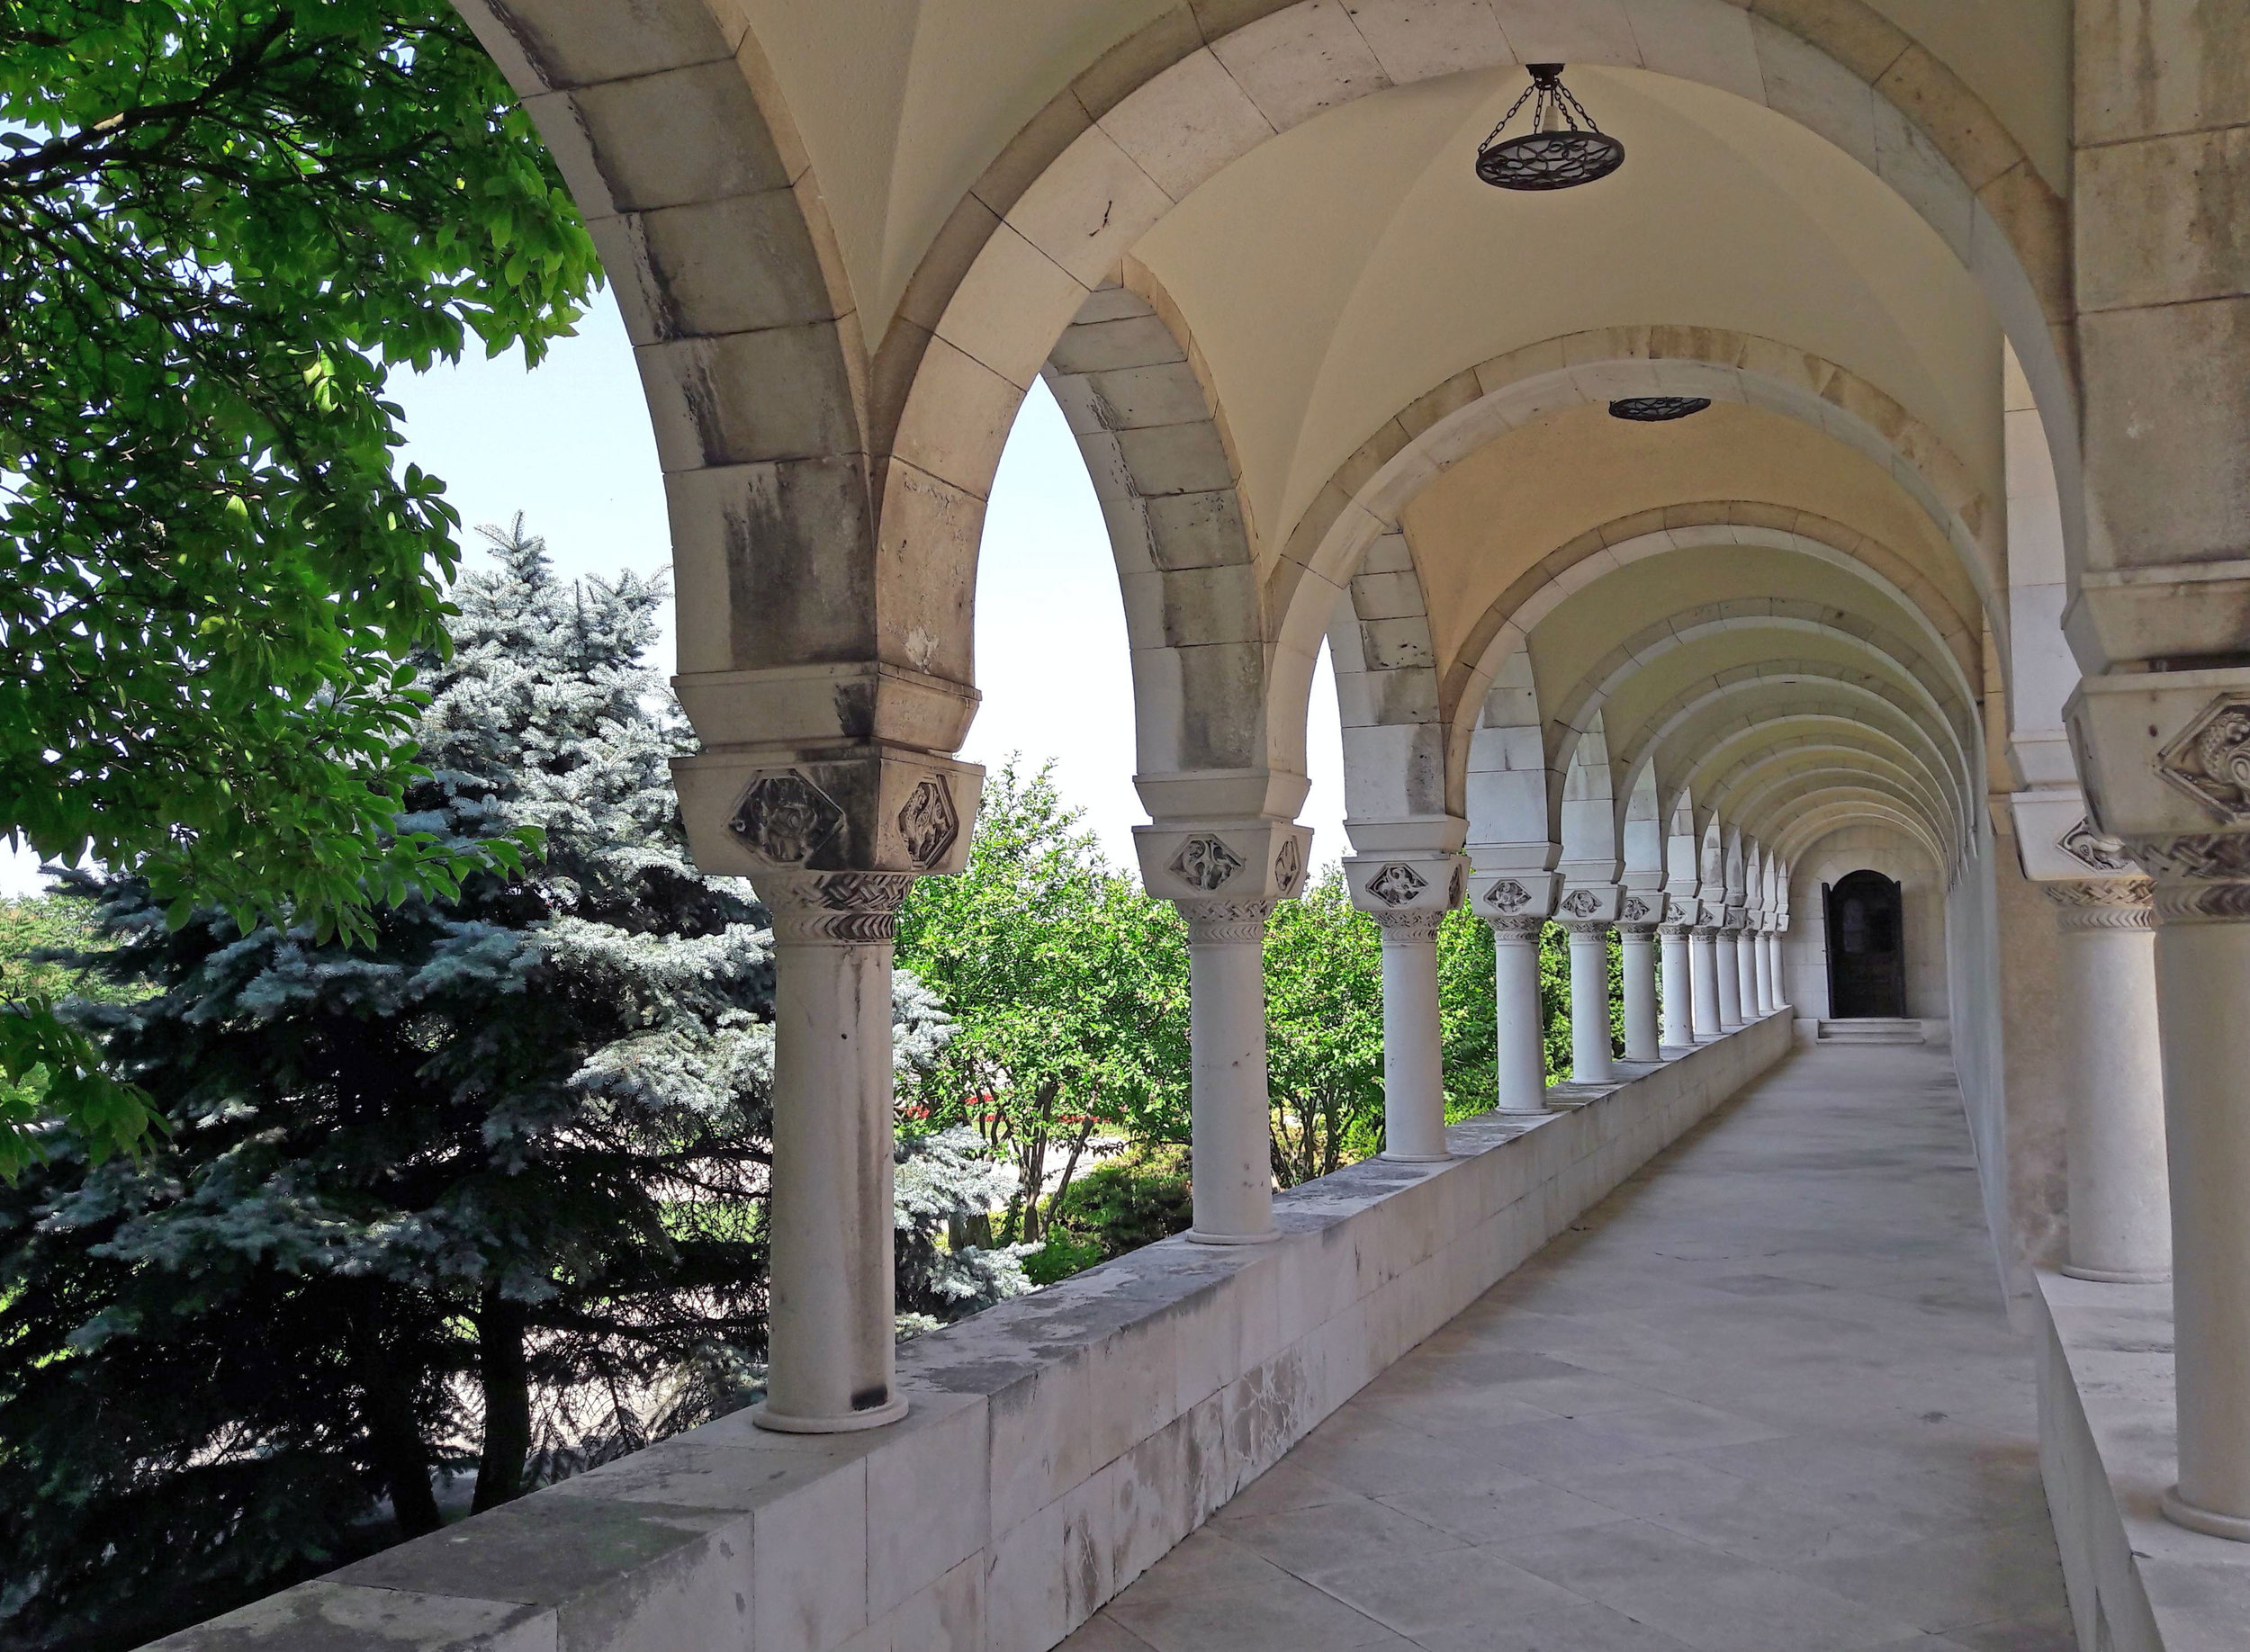 The colonnade of the King's Palace